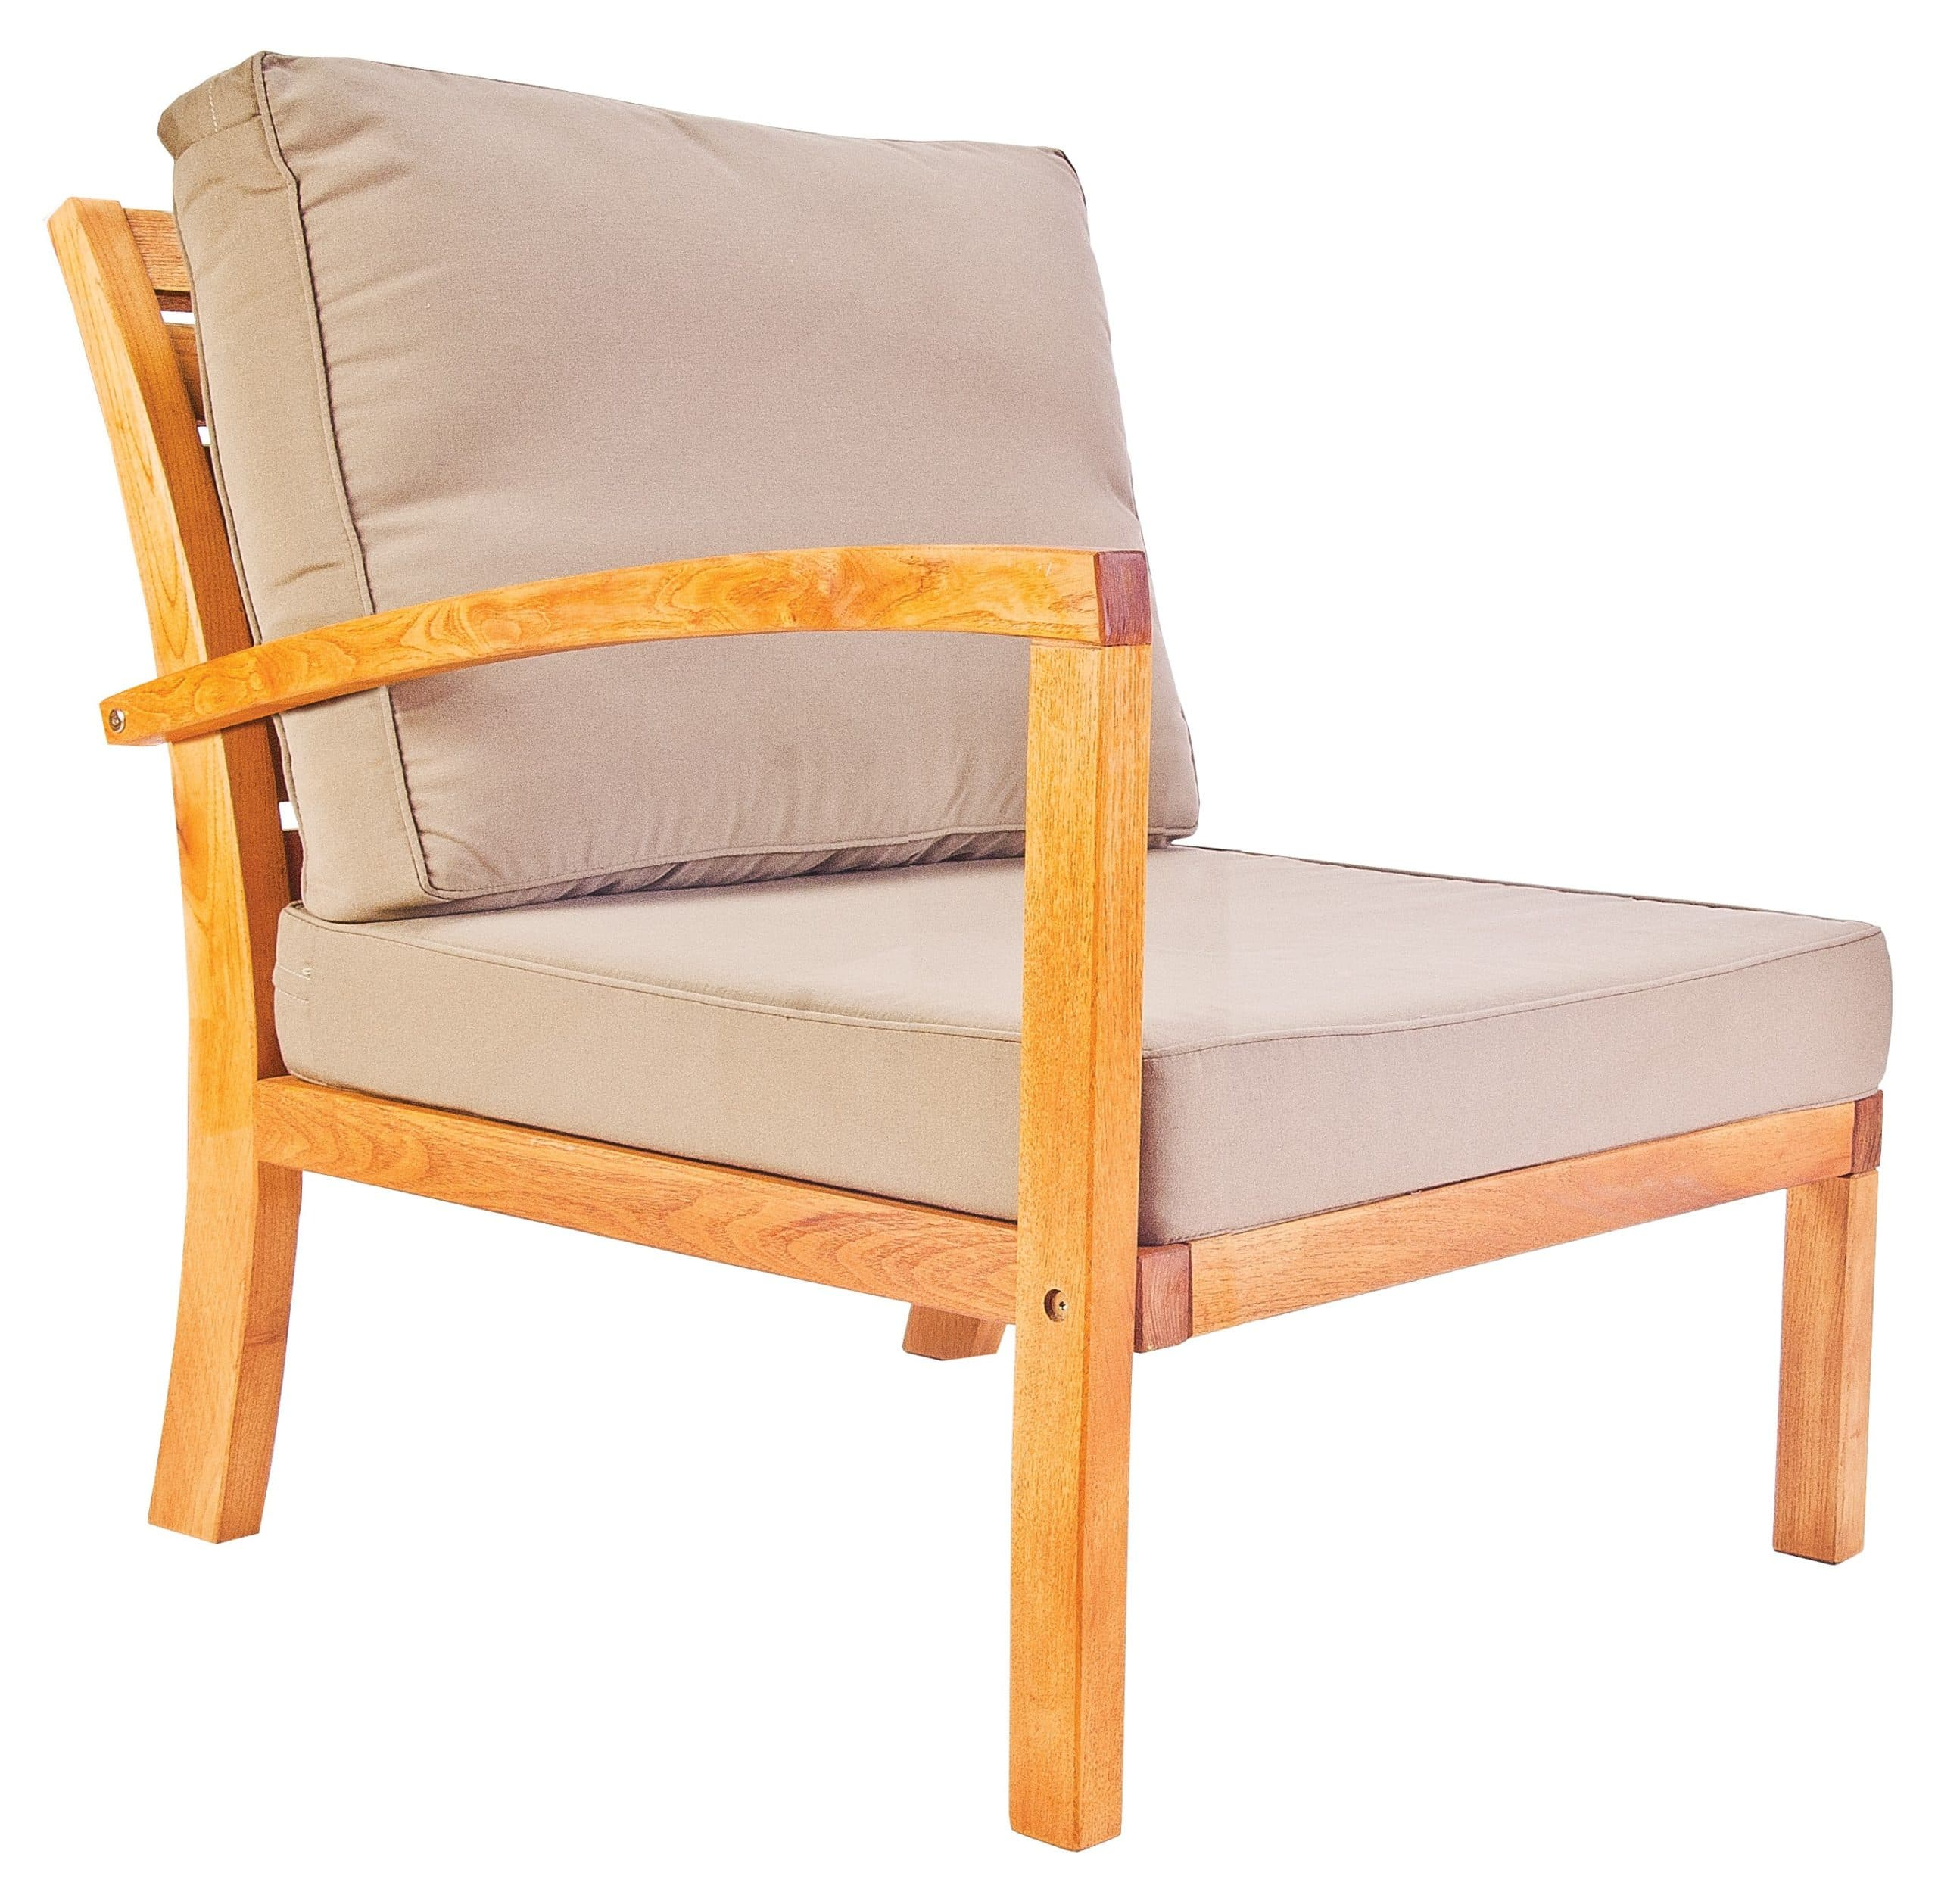 <p>Outdoor Furniture Leisure Collection Vista Armchair with right arm.</p> <p> </p> <p>Comfortable Patio Lounge Set Vista Armchair with right arm.</p> <p> </p> <p>Modern Leisure indoor or outdoor Hotel Coffee Lounge Set includes Armchairs, Chair, Corner Settee, Footstool and Table. Suits a variety of locations and settings including outdoor terraces, hotel reception areas and foyers with unlimited configuration options available</p>